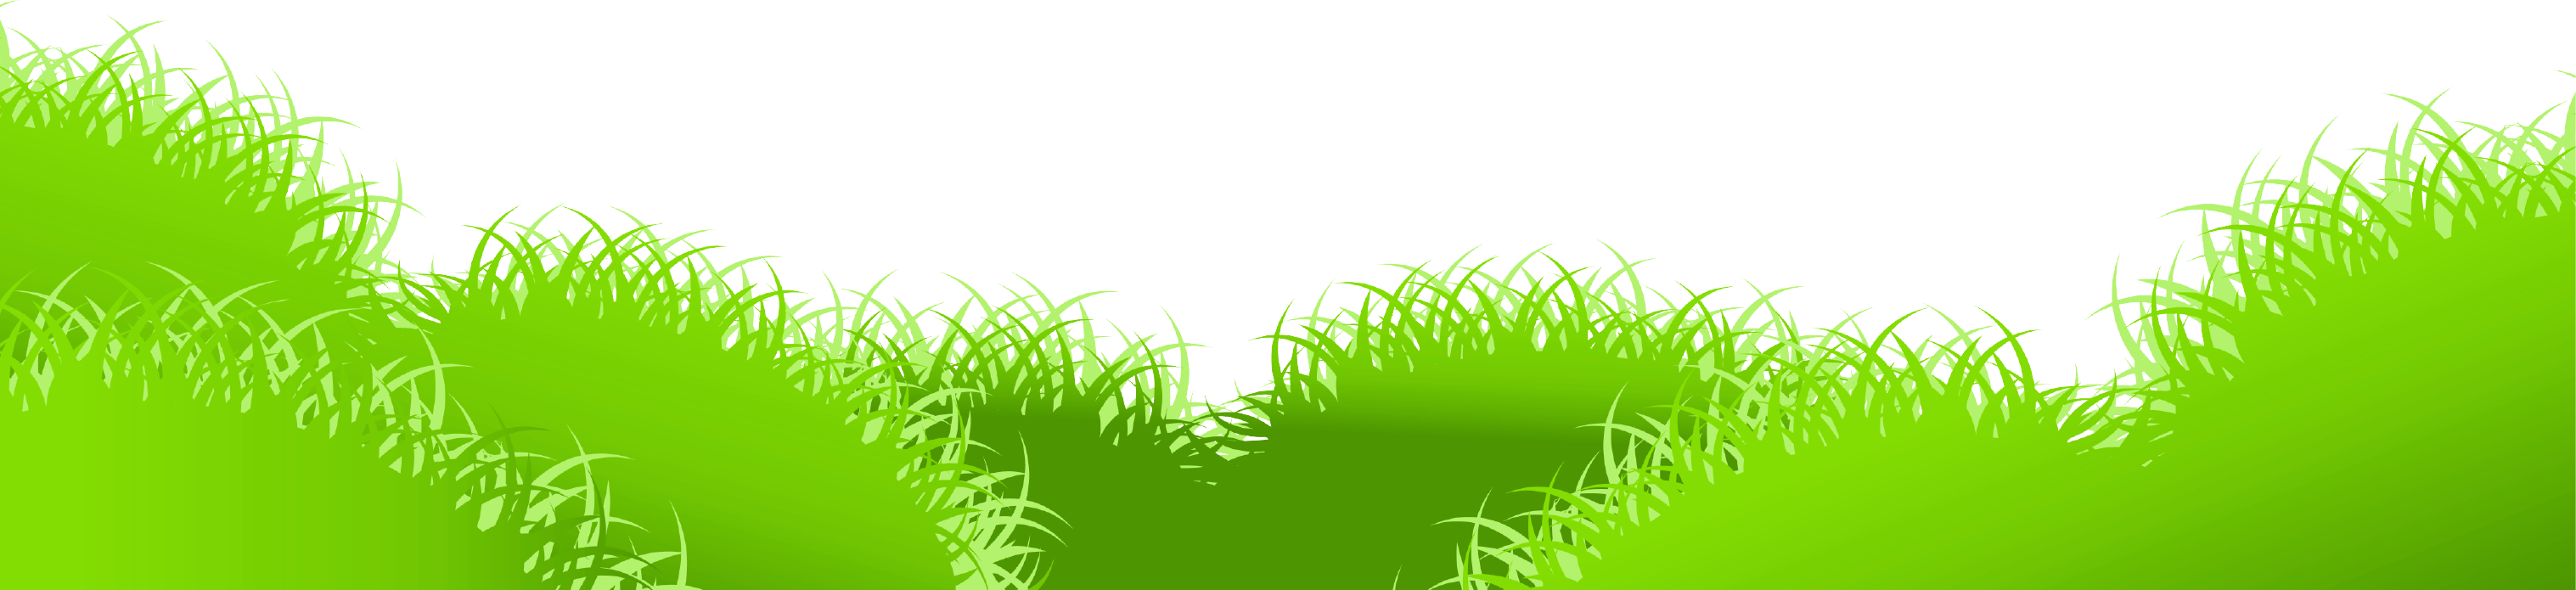 Png picture gallery yopriceville. Grass clipart landscape